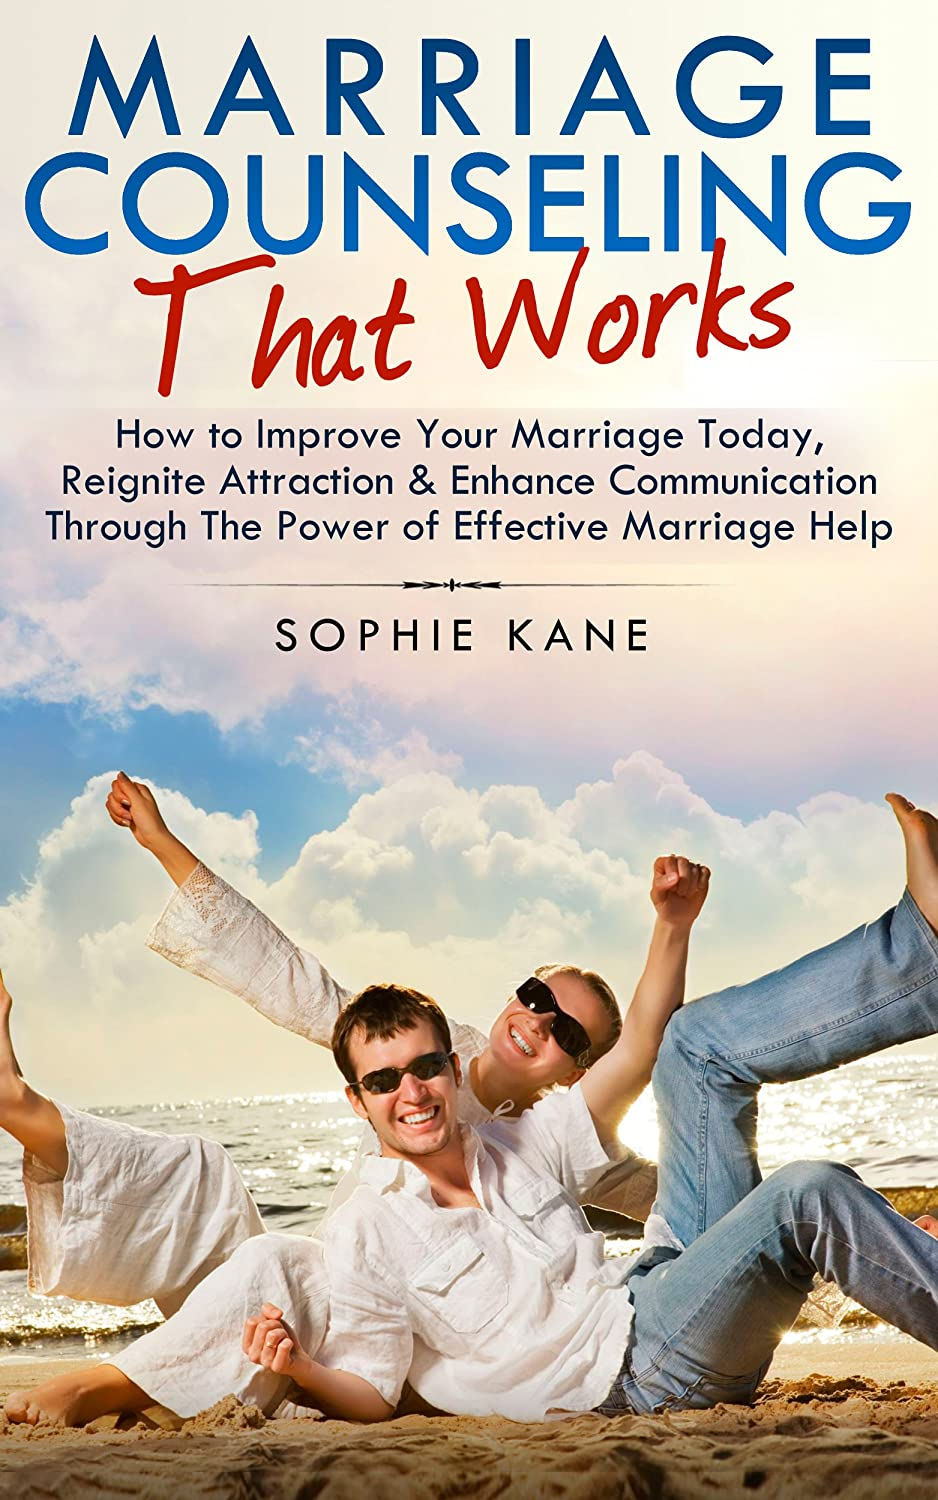 MarriageCounselingWorks